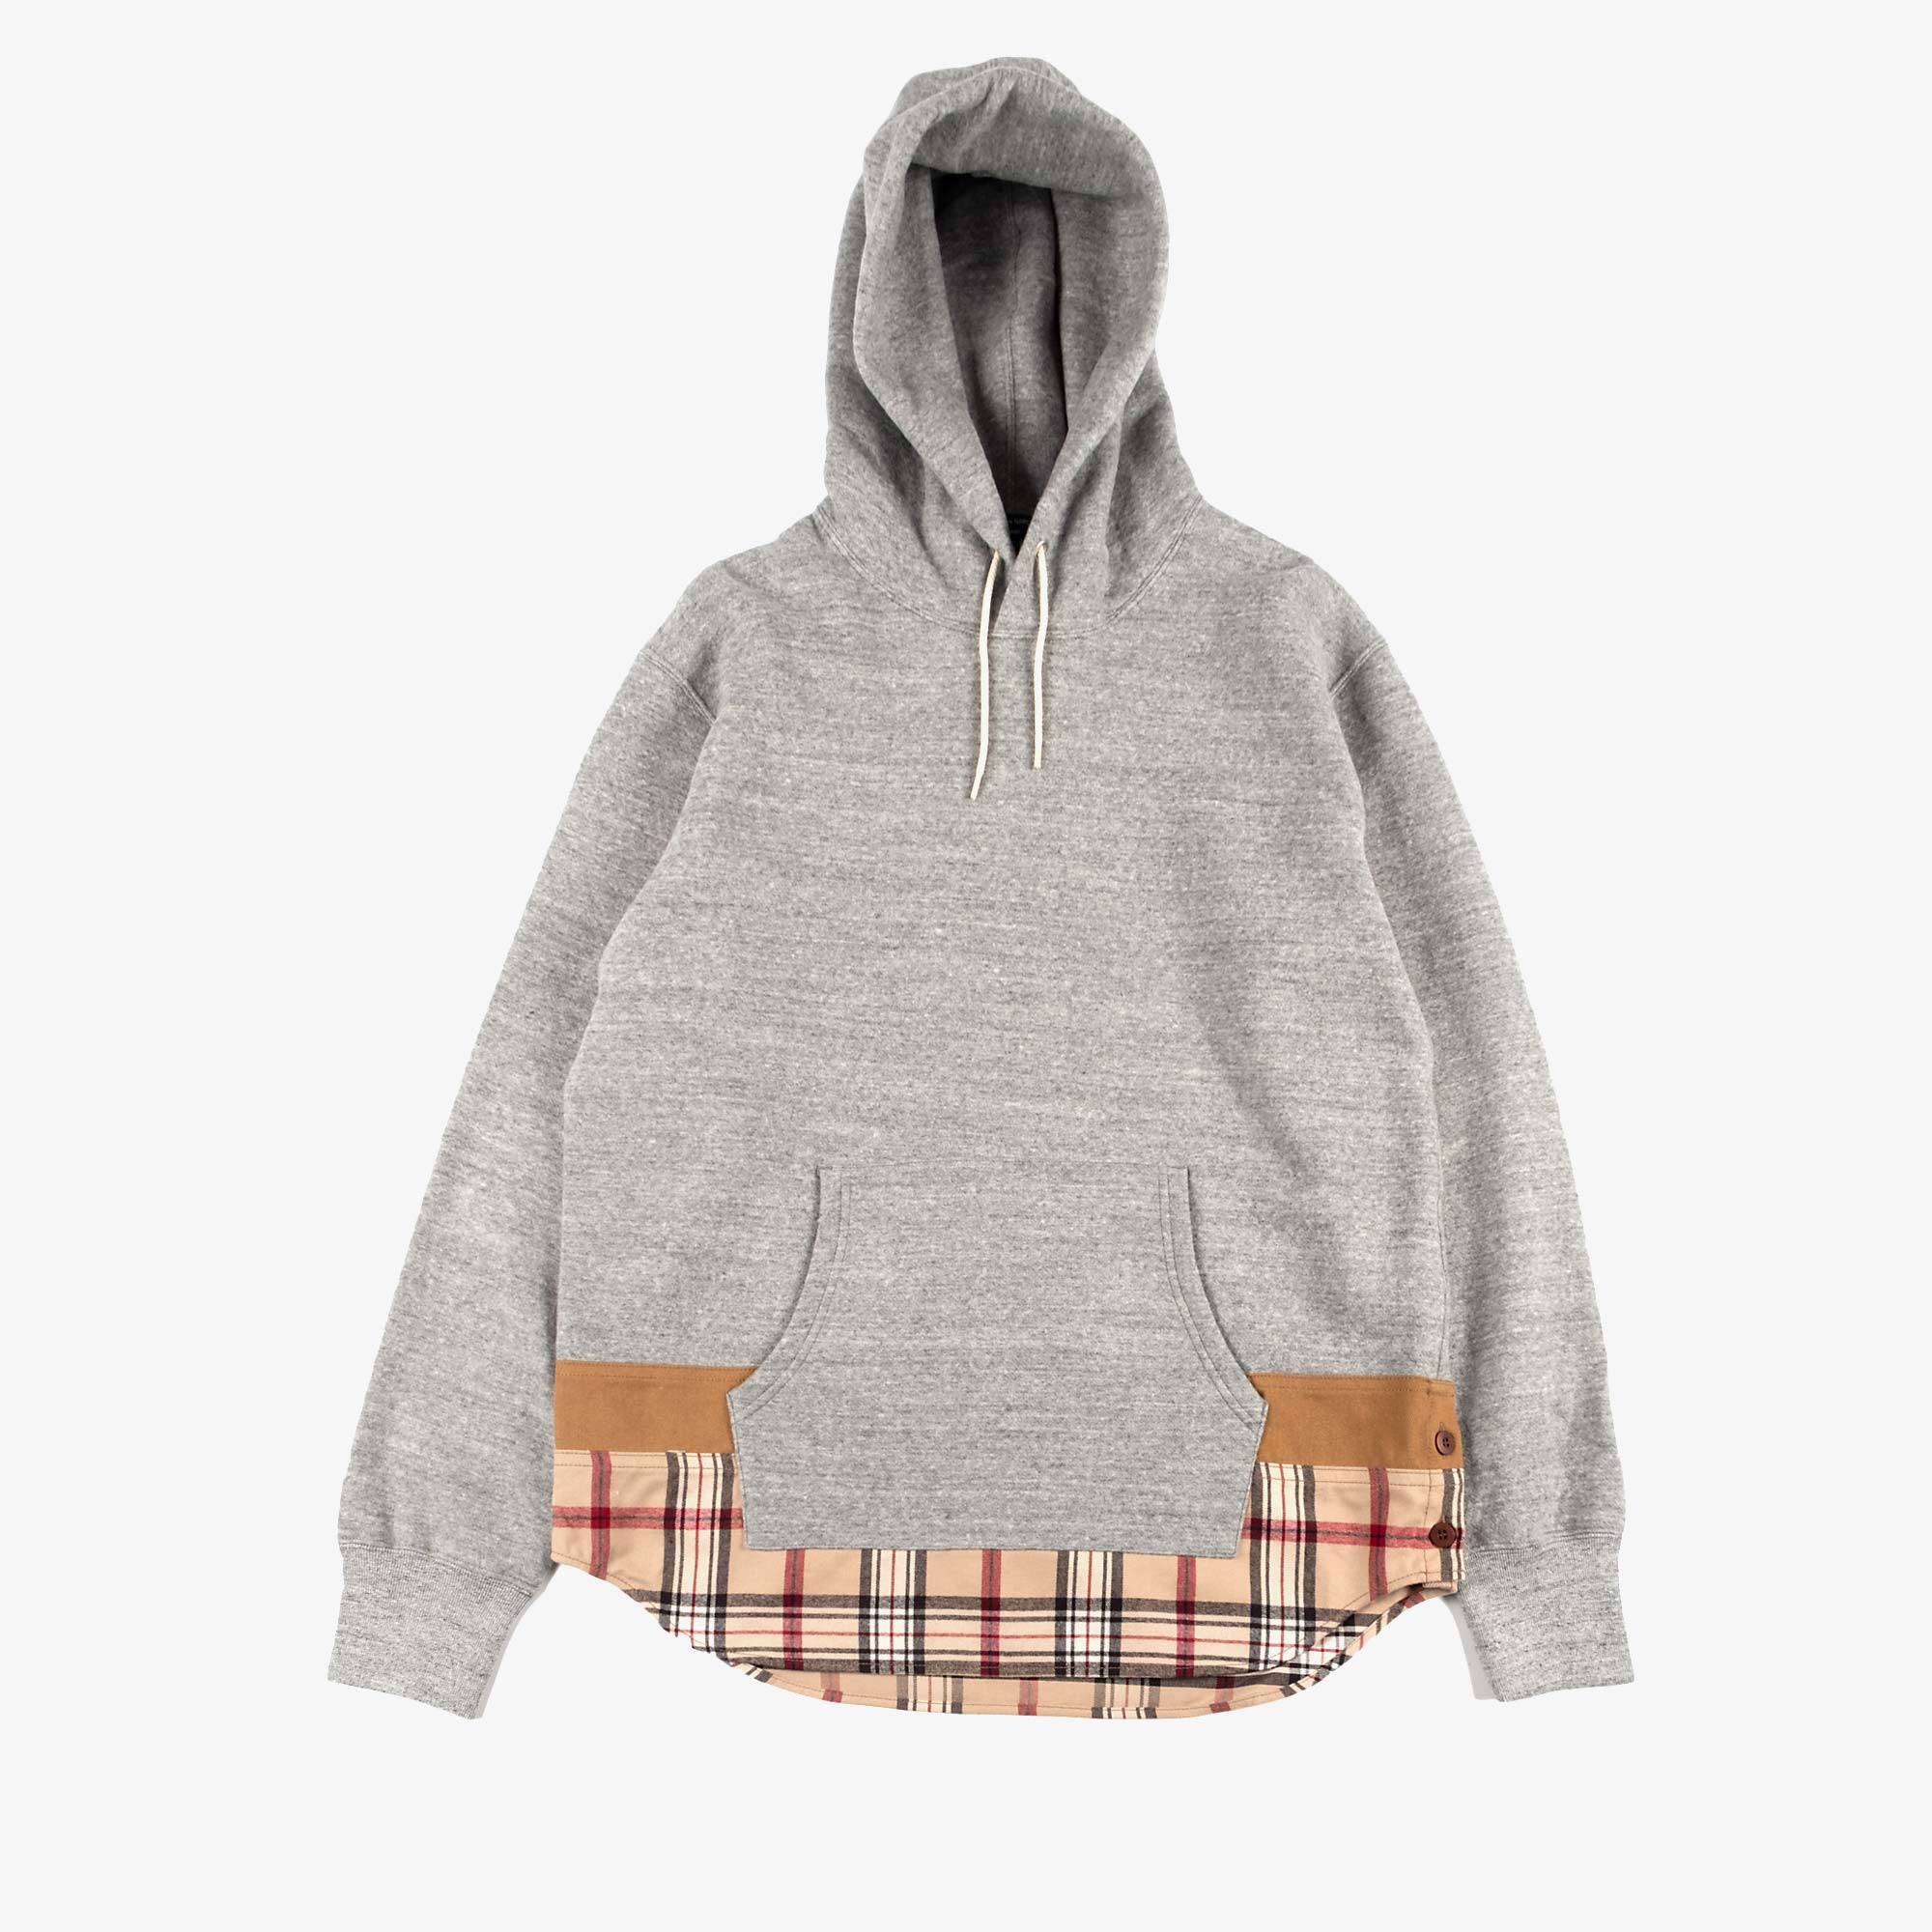 Comme des Garçons - Homme Checked Hem Pullover Hooded Sweat T004 - Grey / Multi 1